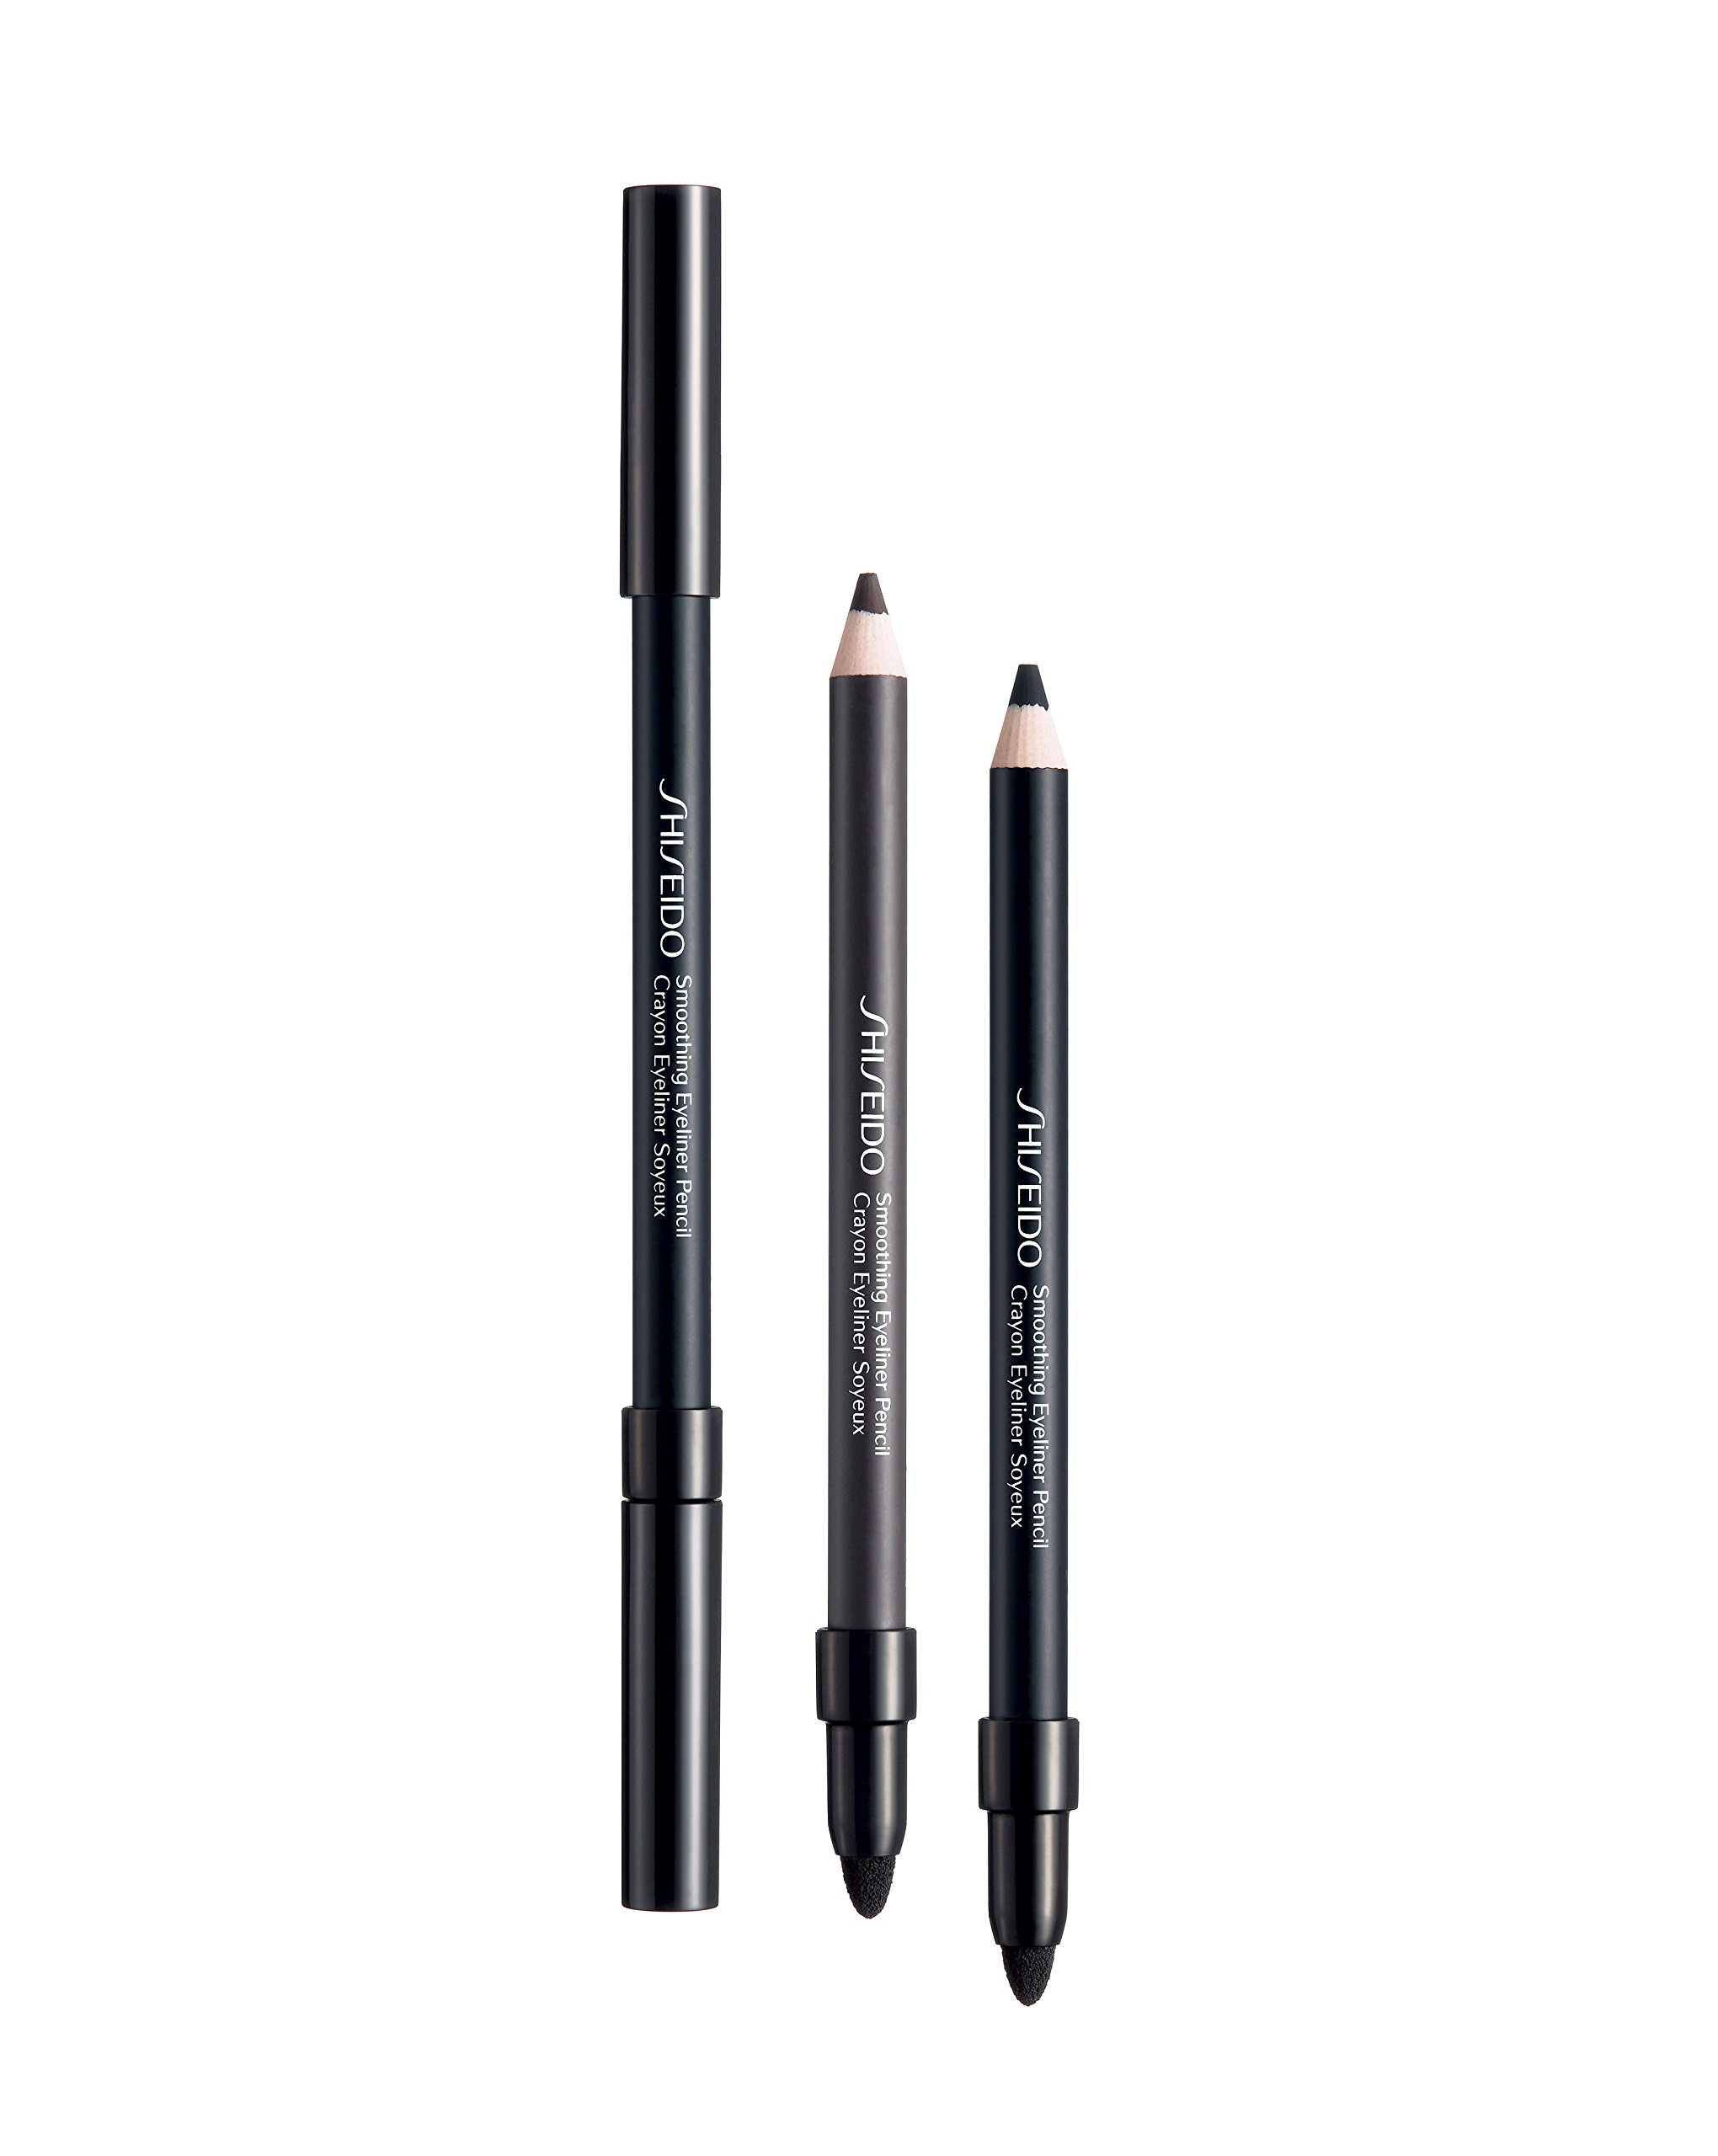 Shiseido The Makeup Smoothing Eyeliner Pencil 1.4g BK901 Black 0.04oz